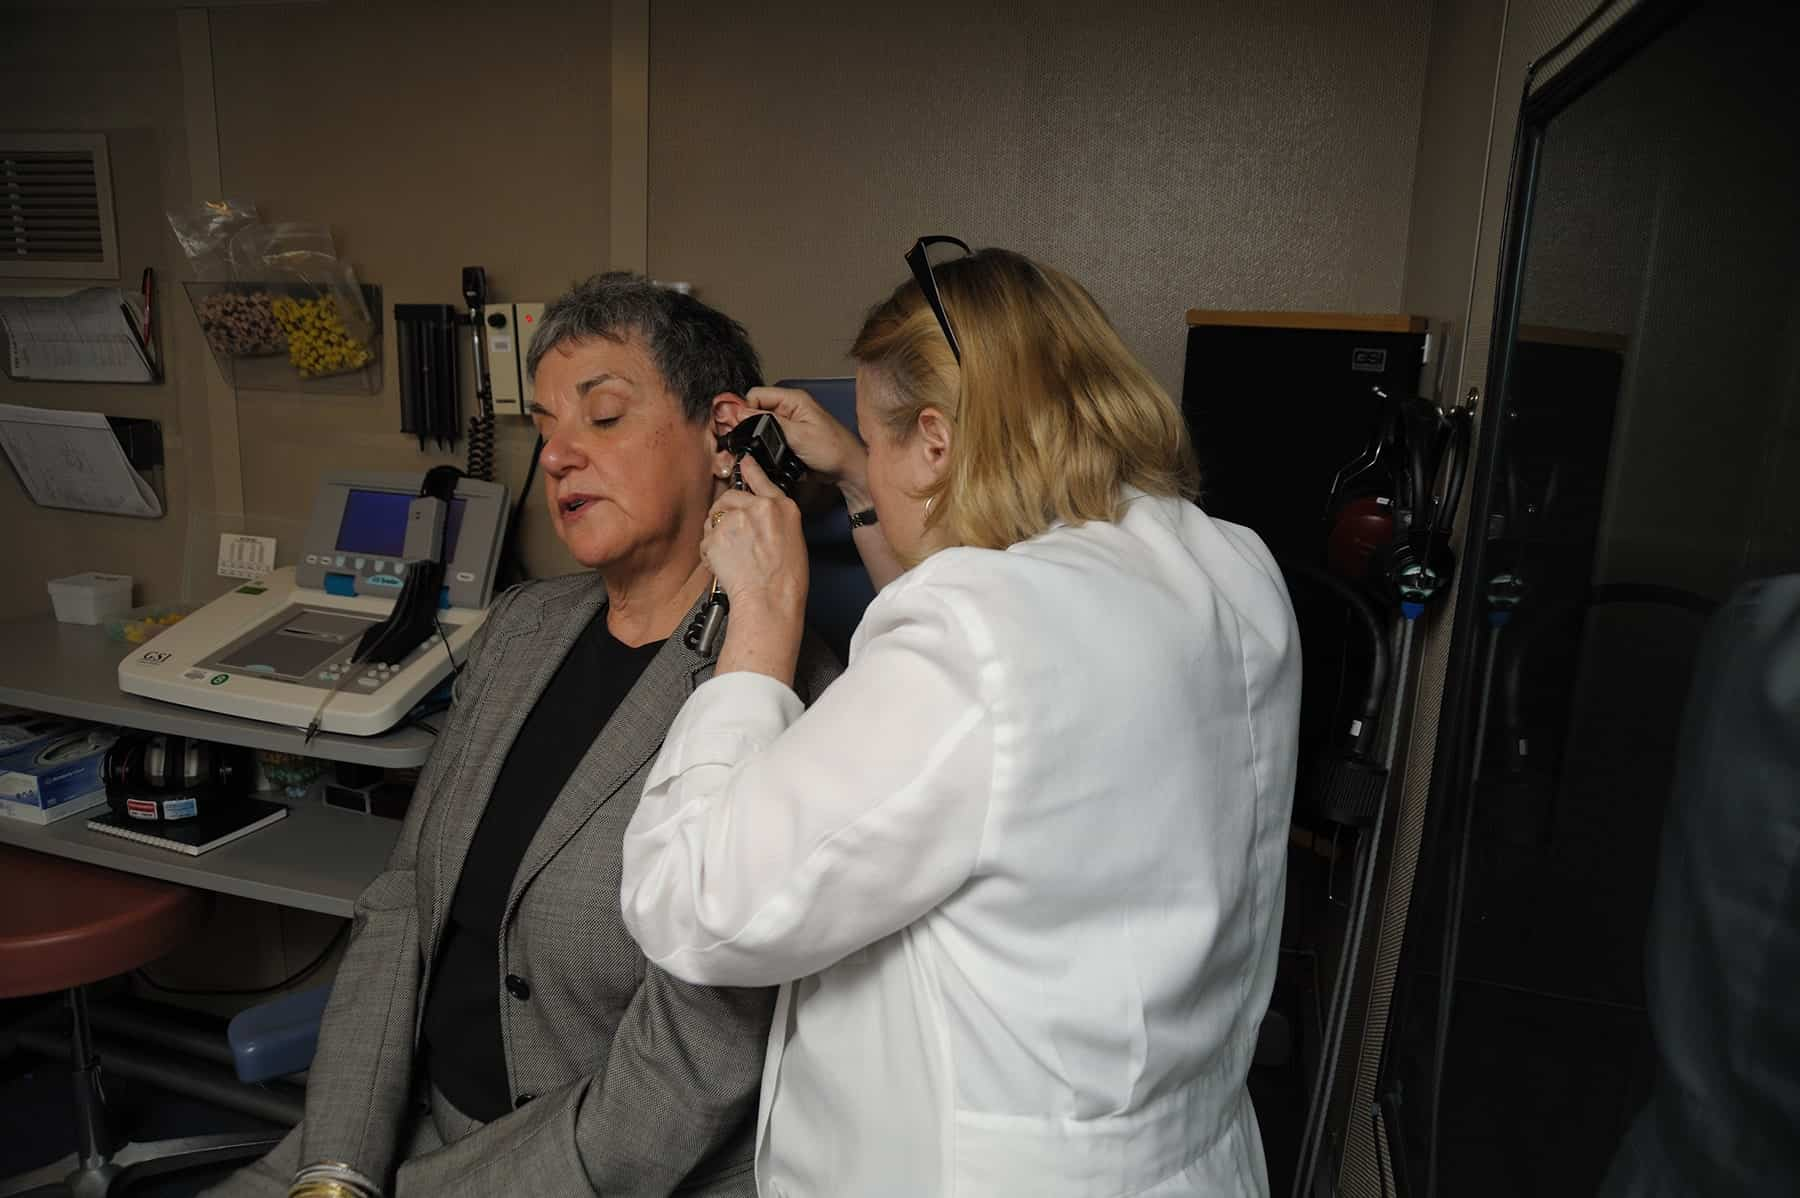 Audiologist Performing Hearing Exam on Older Female Patient